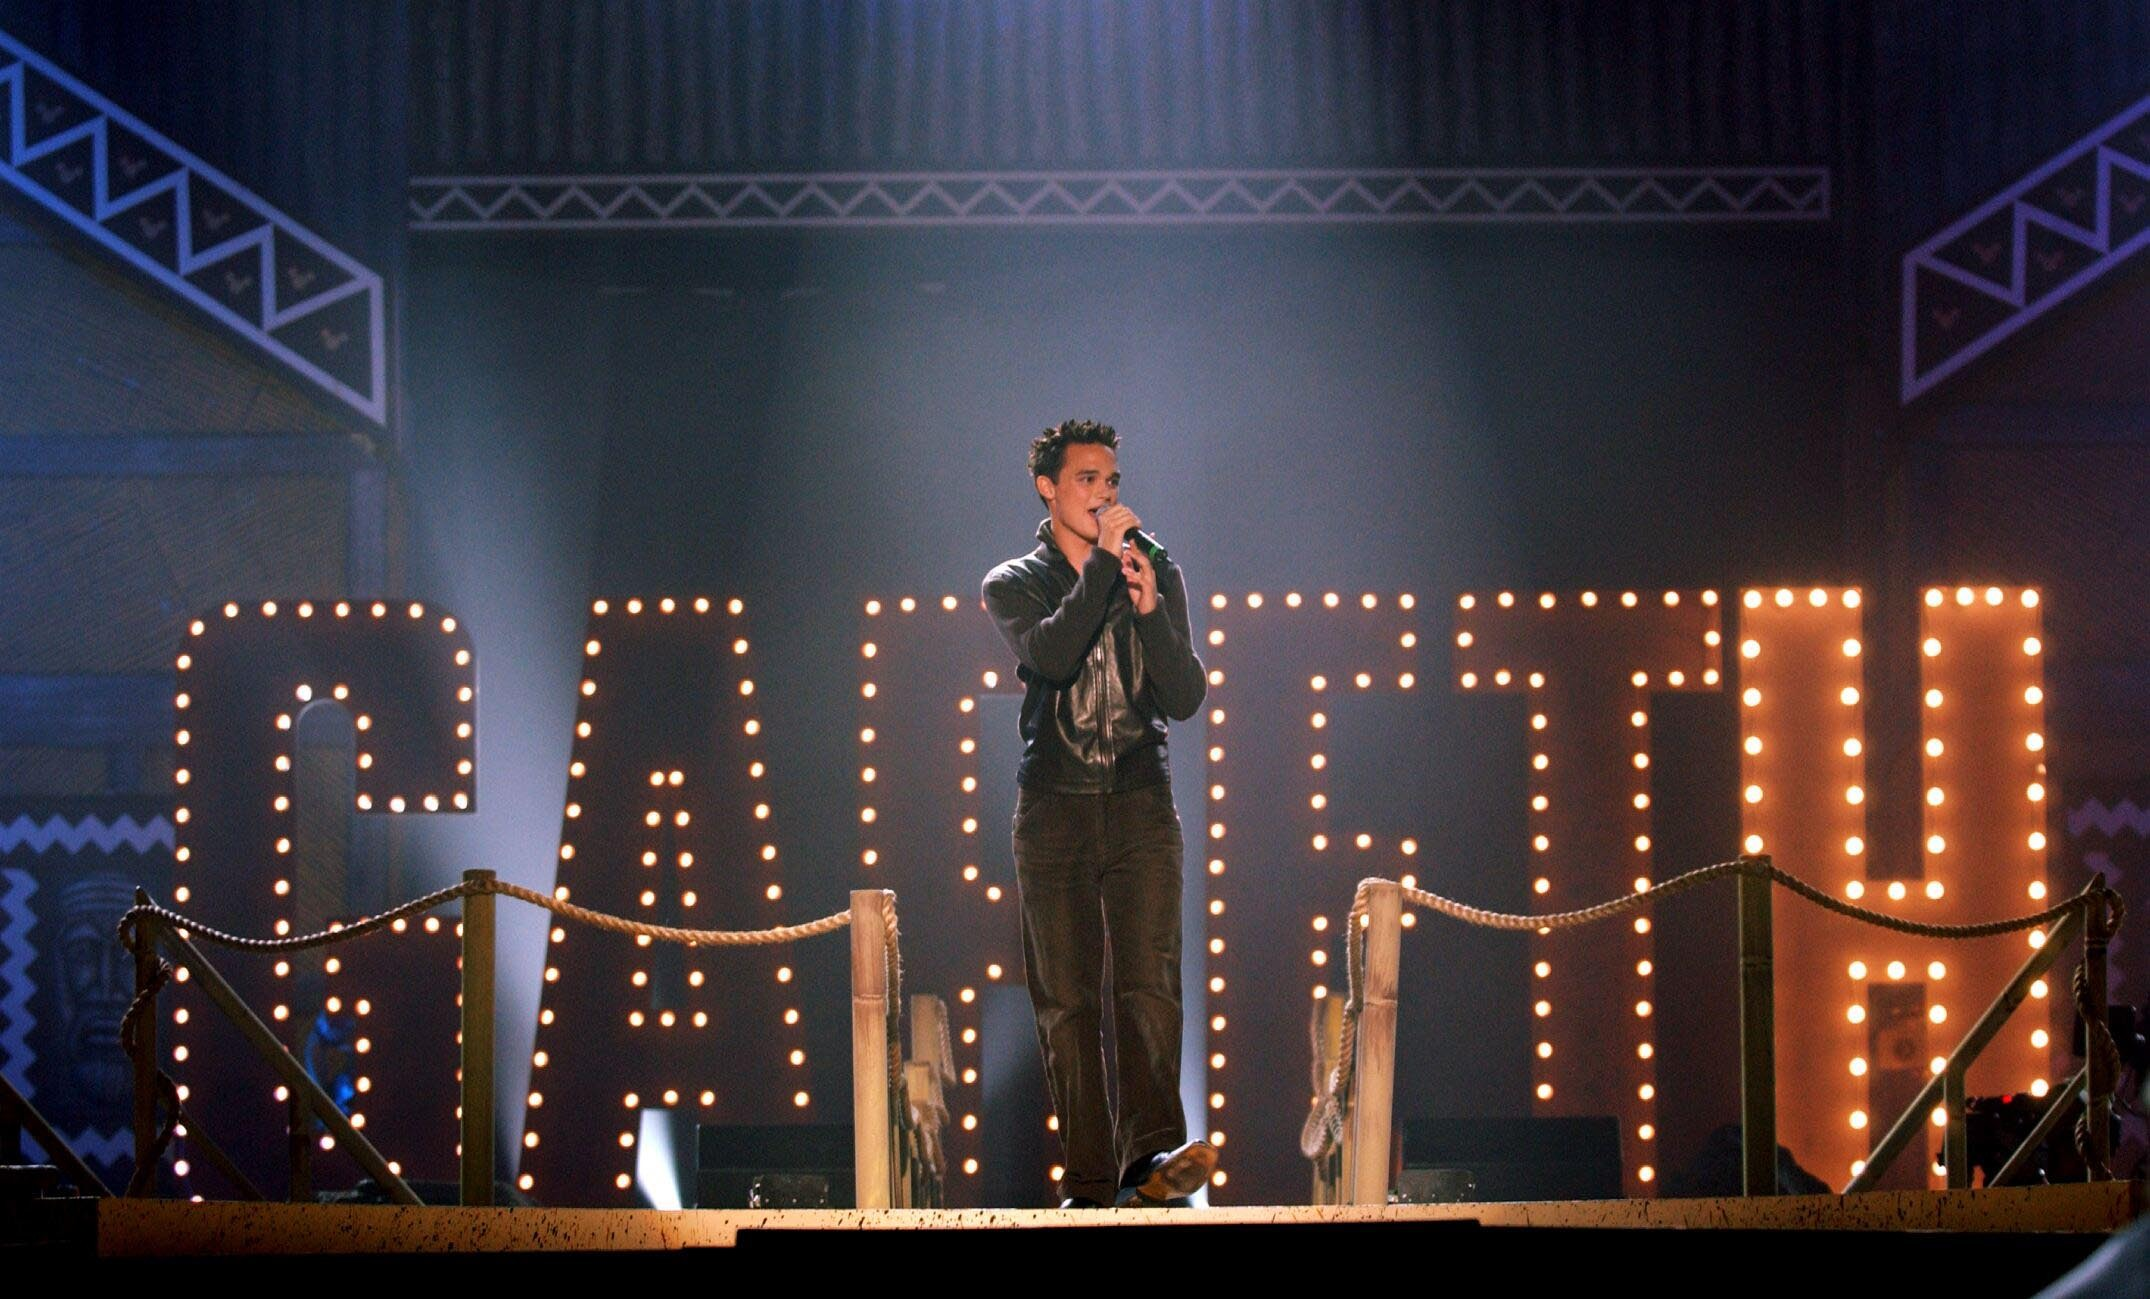 Gareth Gates performing in London in 2002. (Ian West/PA)